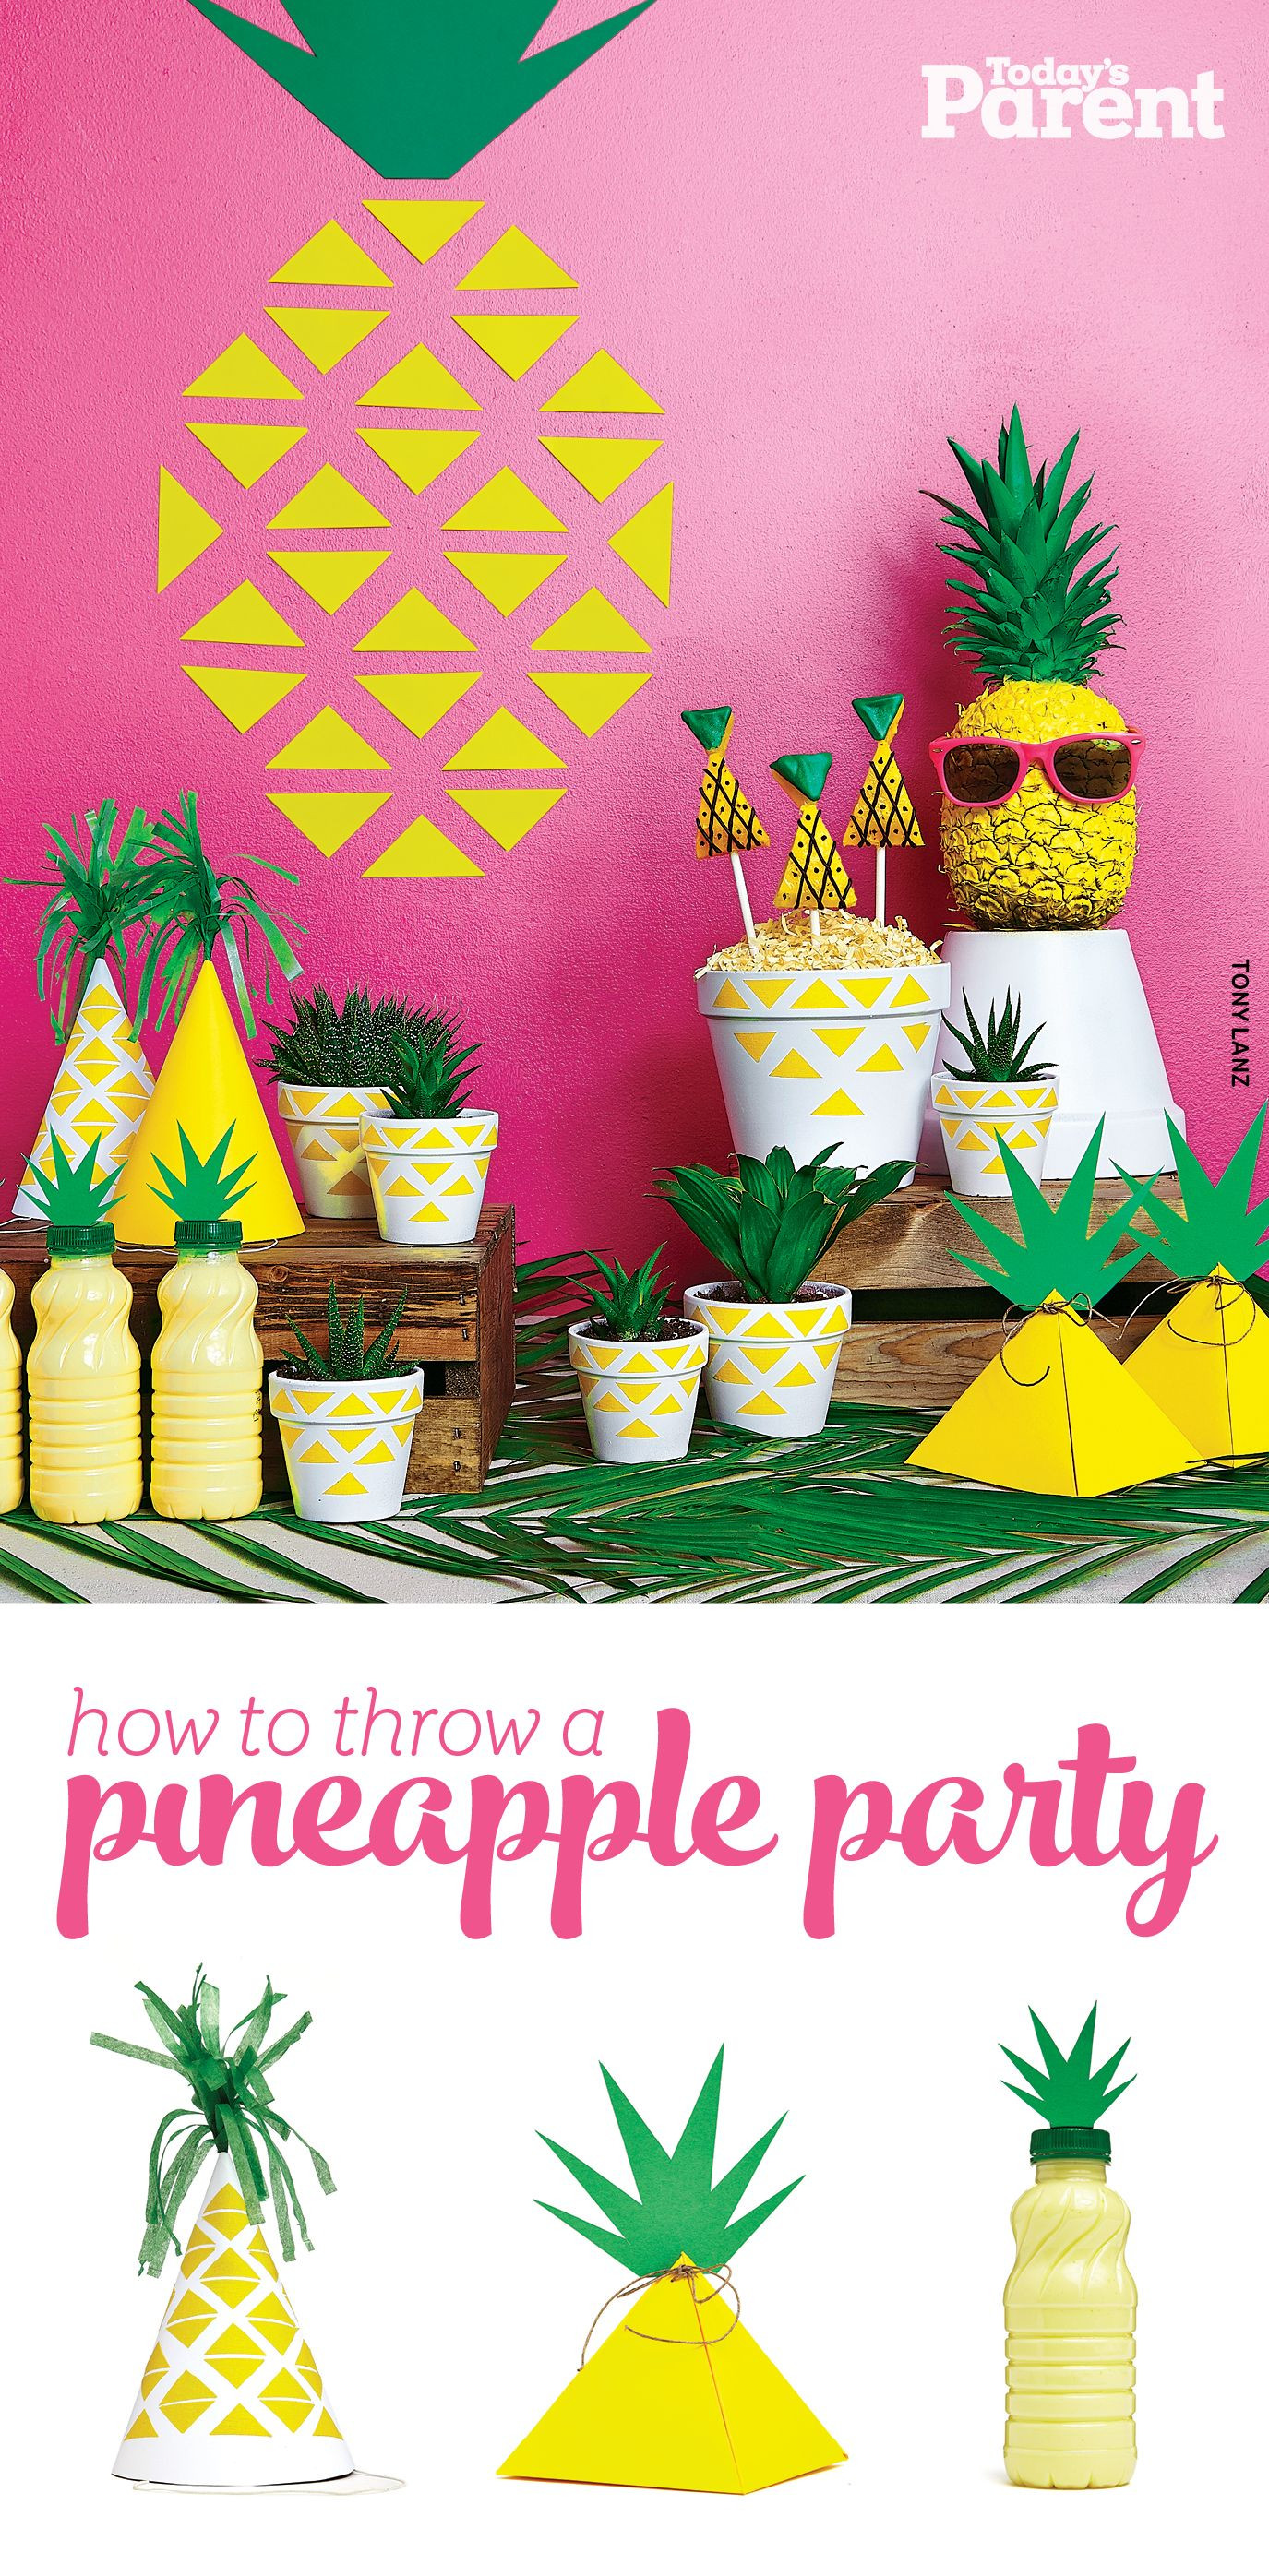 Summer In Winter Party Ideas  How to throw a pineapple party